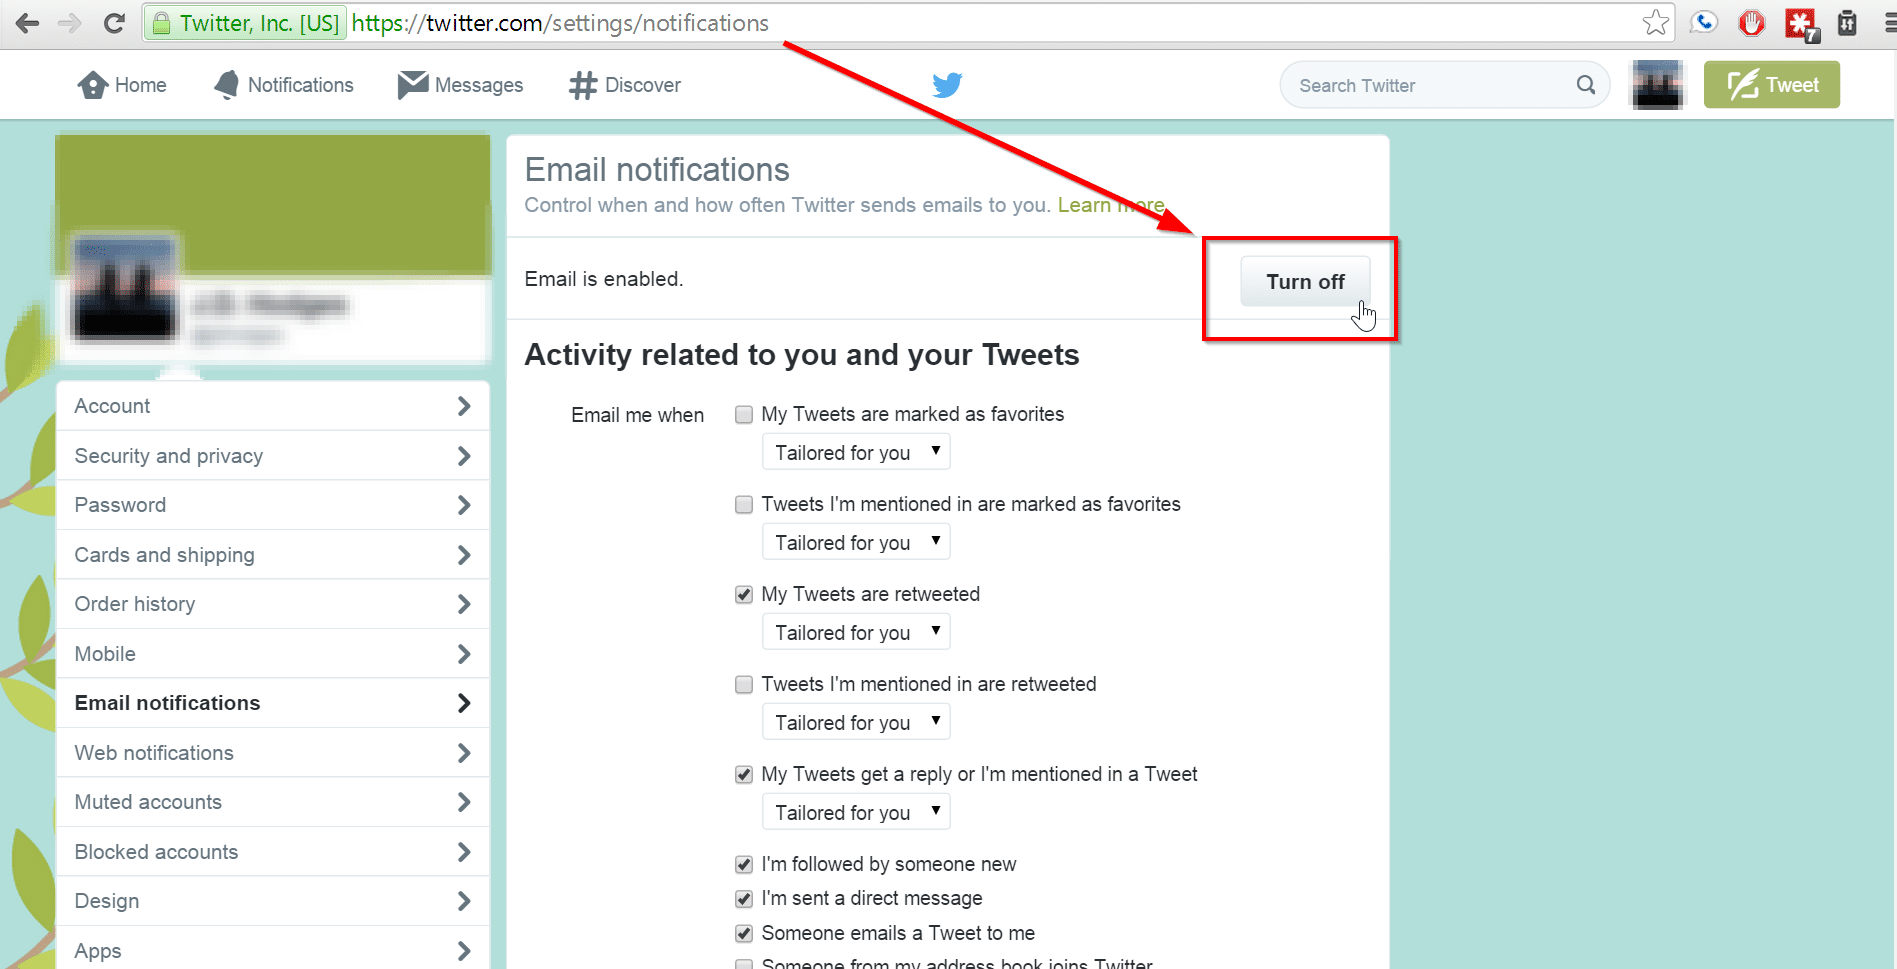 how to find account settings on twitter